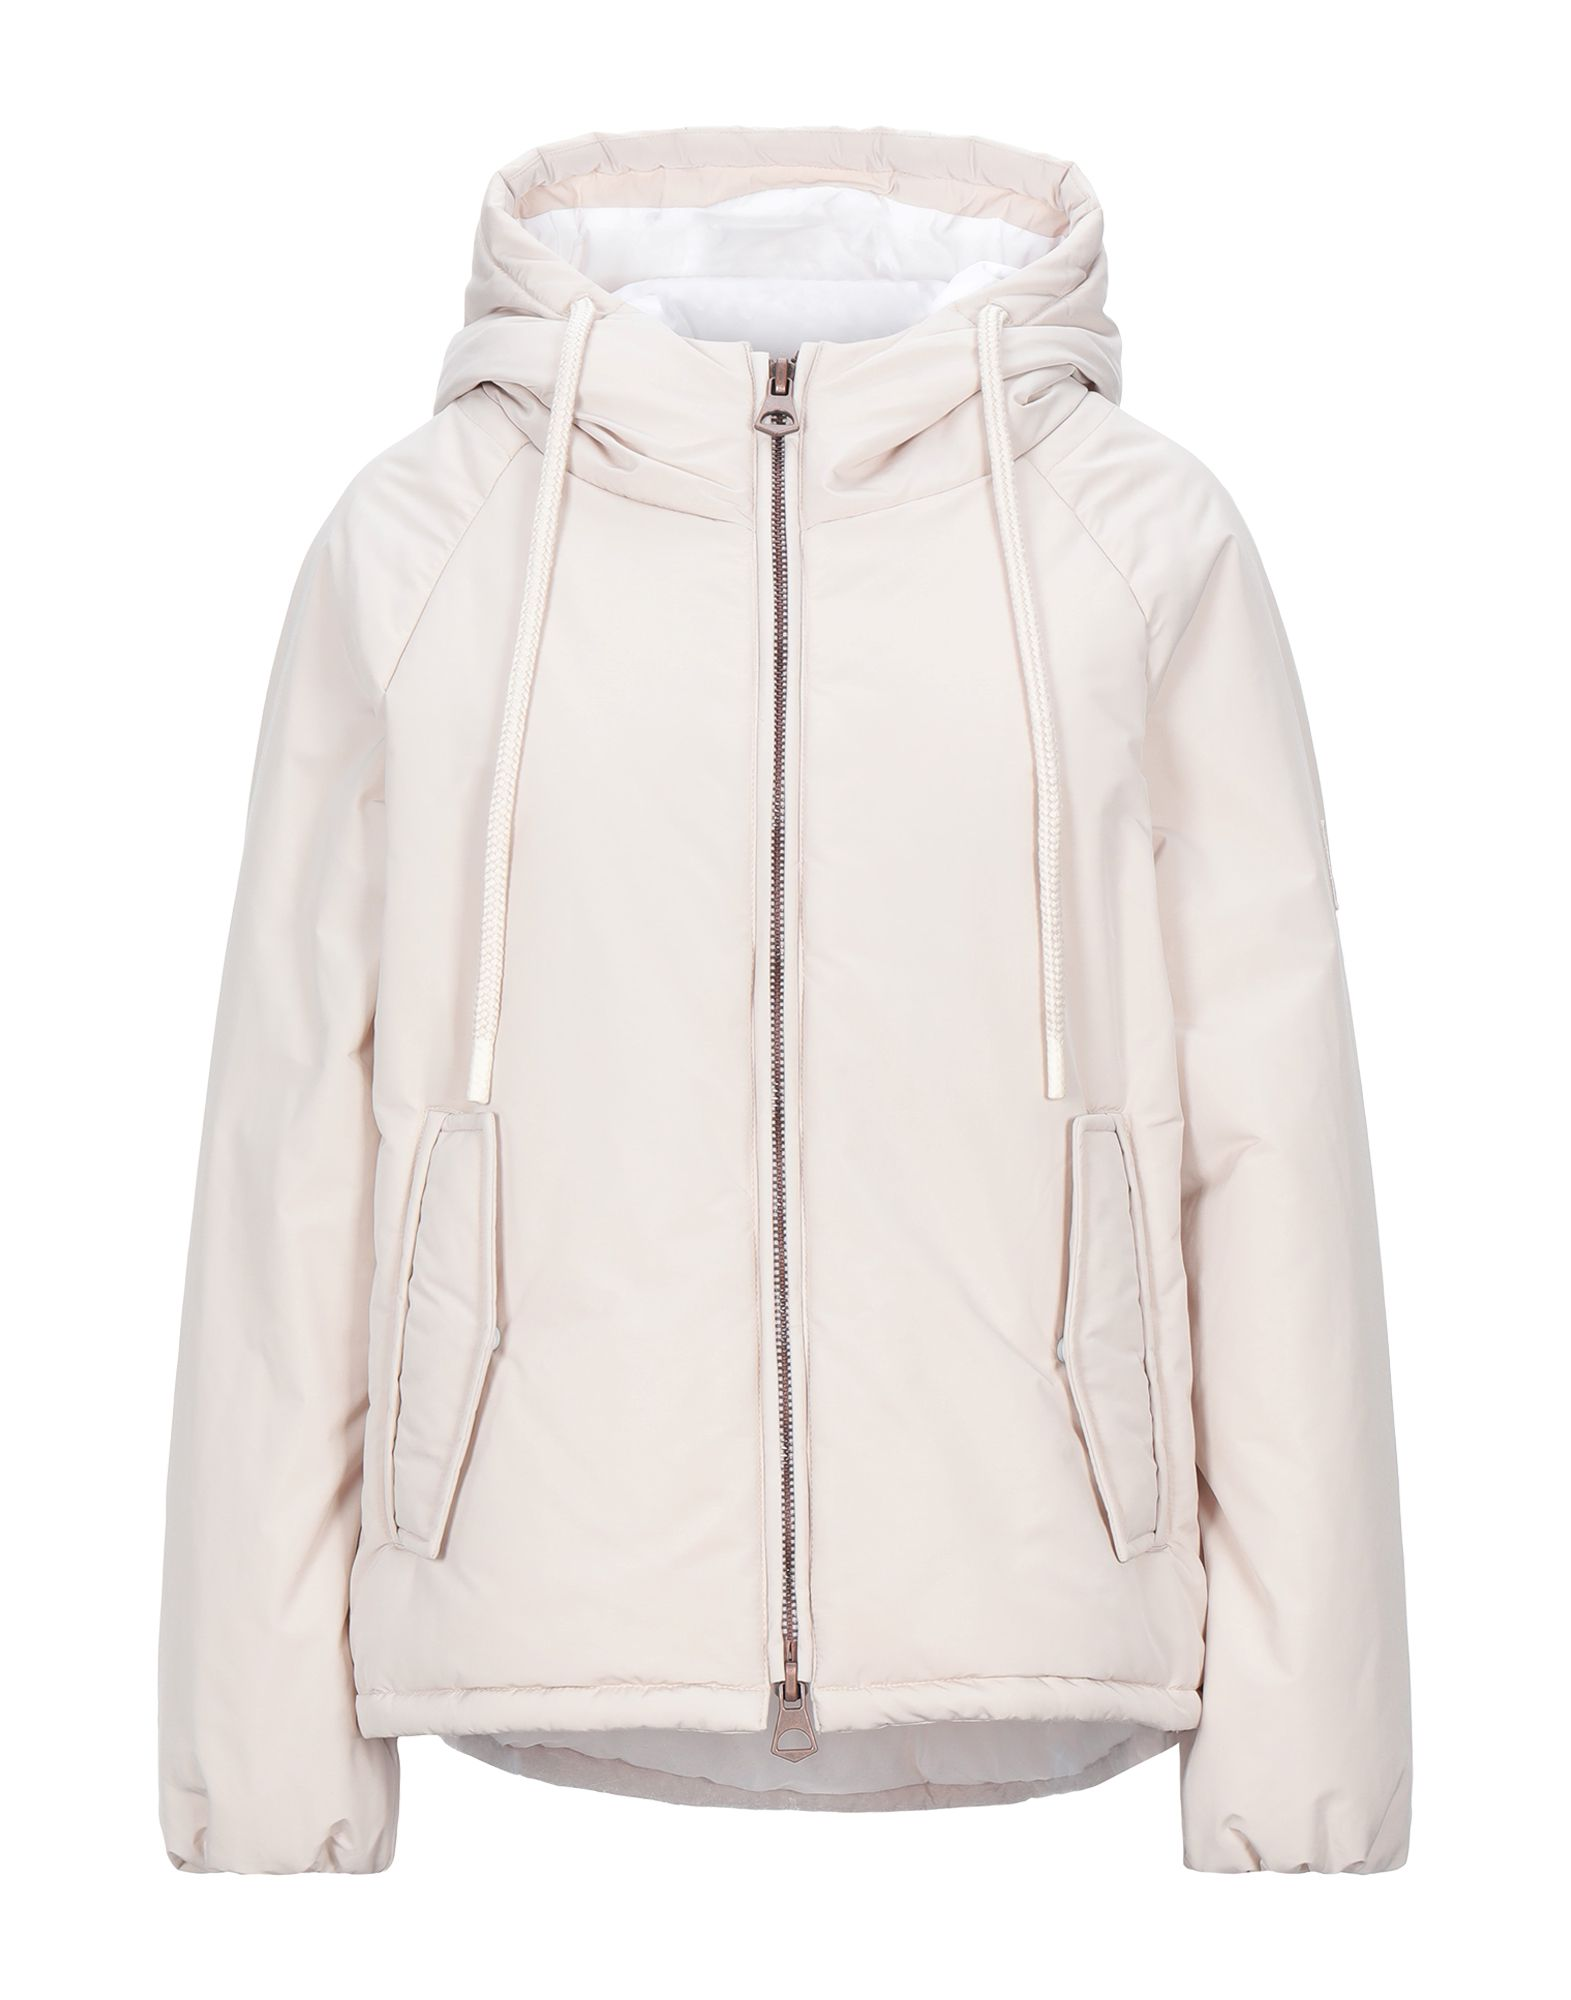 OOF Synthetic Down Jackets - Item 41969111